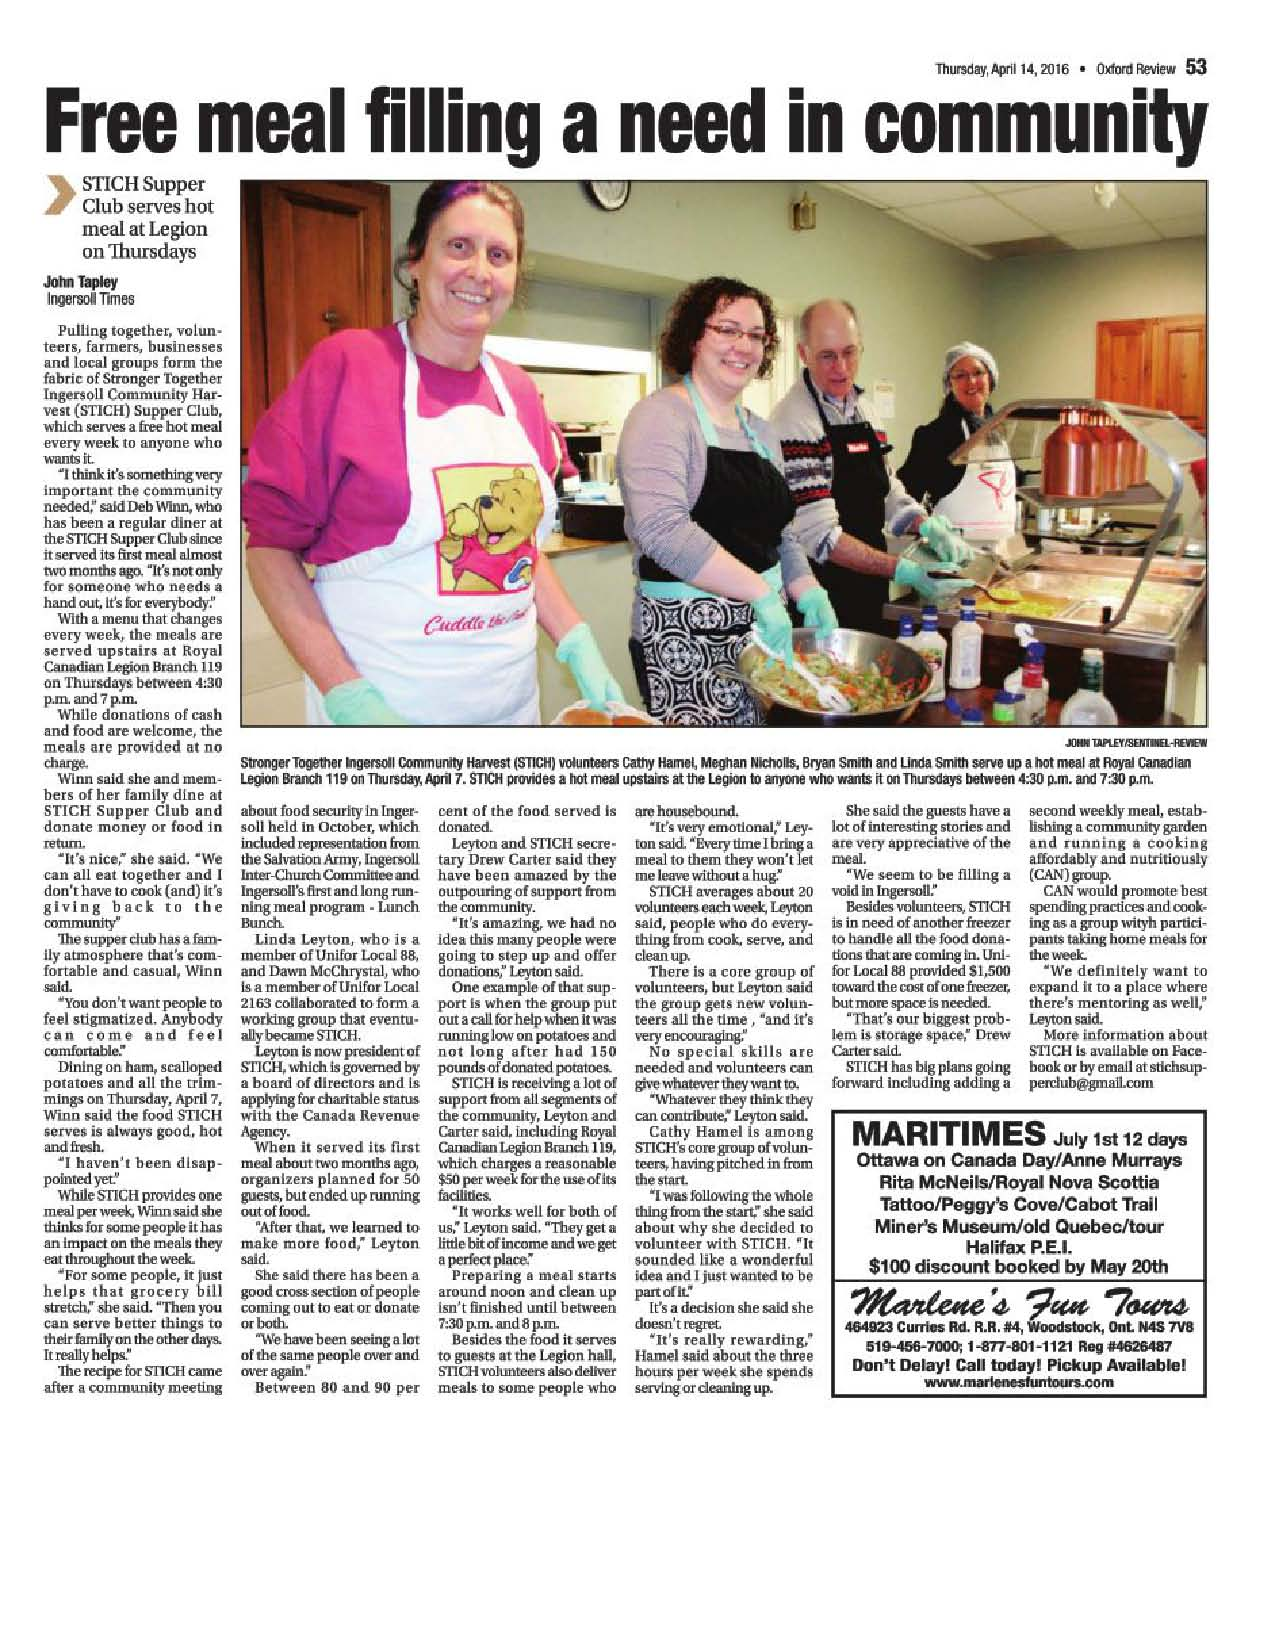 Woodstock Sentinel-Review - Oxford_Review-0414